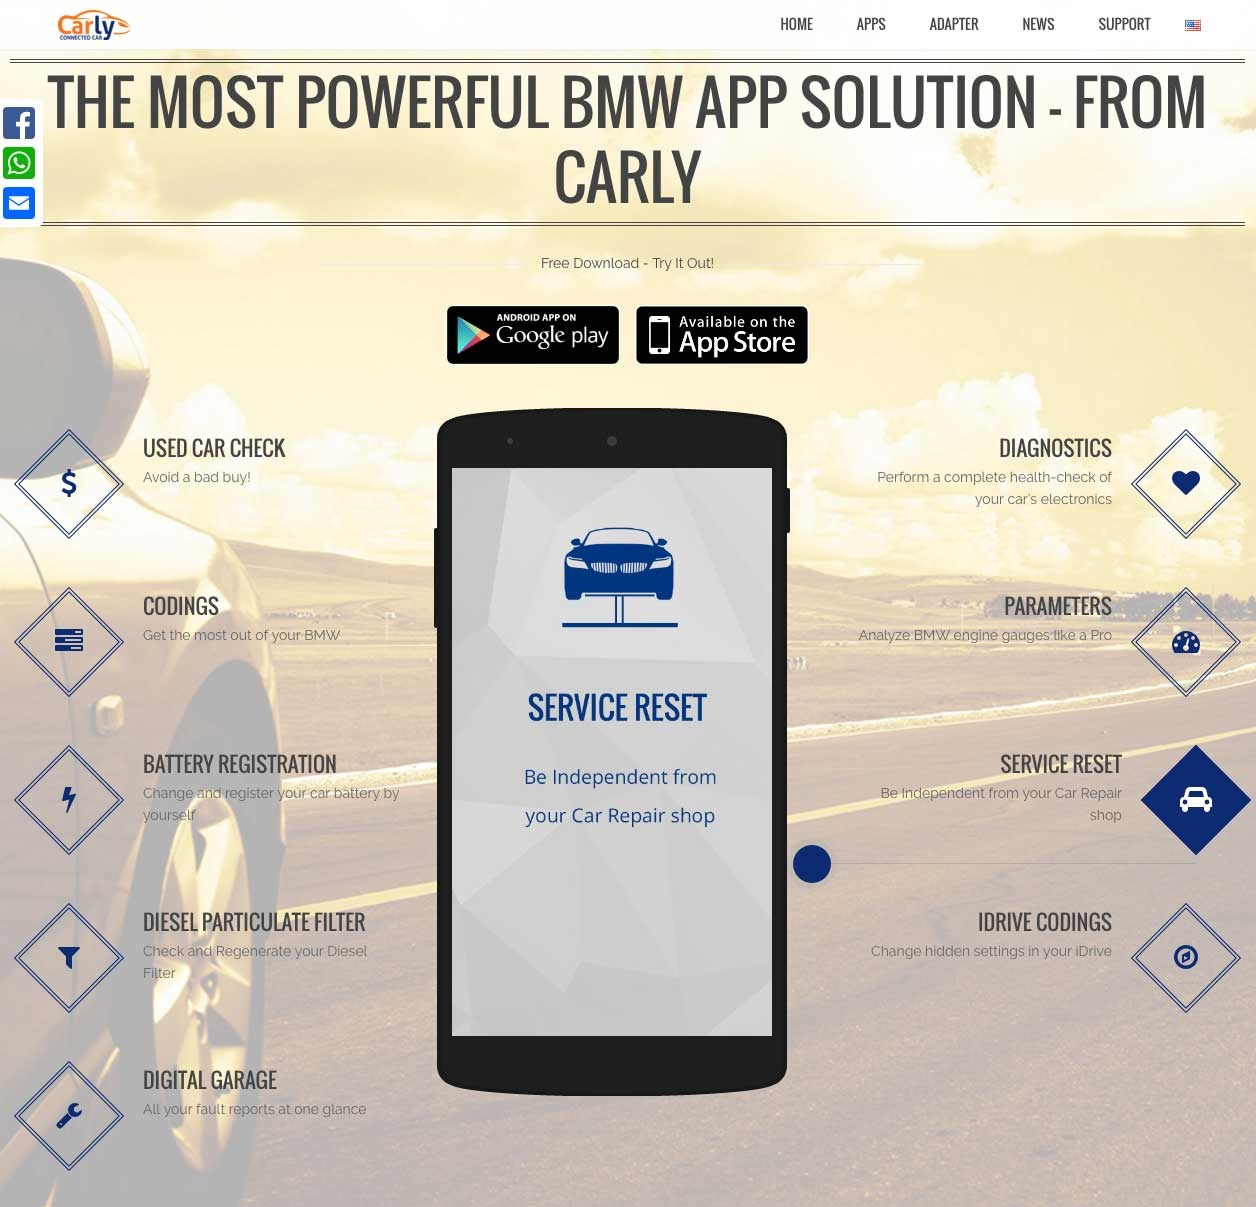 Downloaded iOS Carly for BMW app and ordered OBD adapter   My